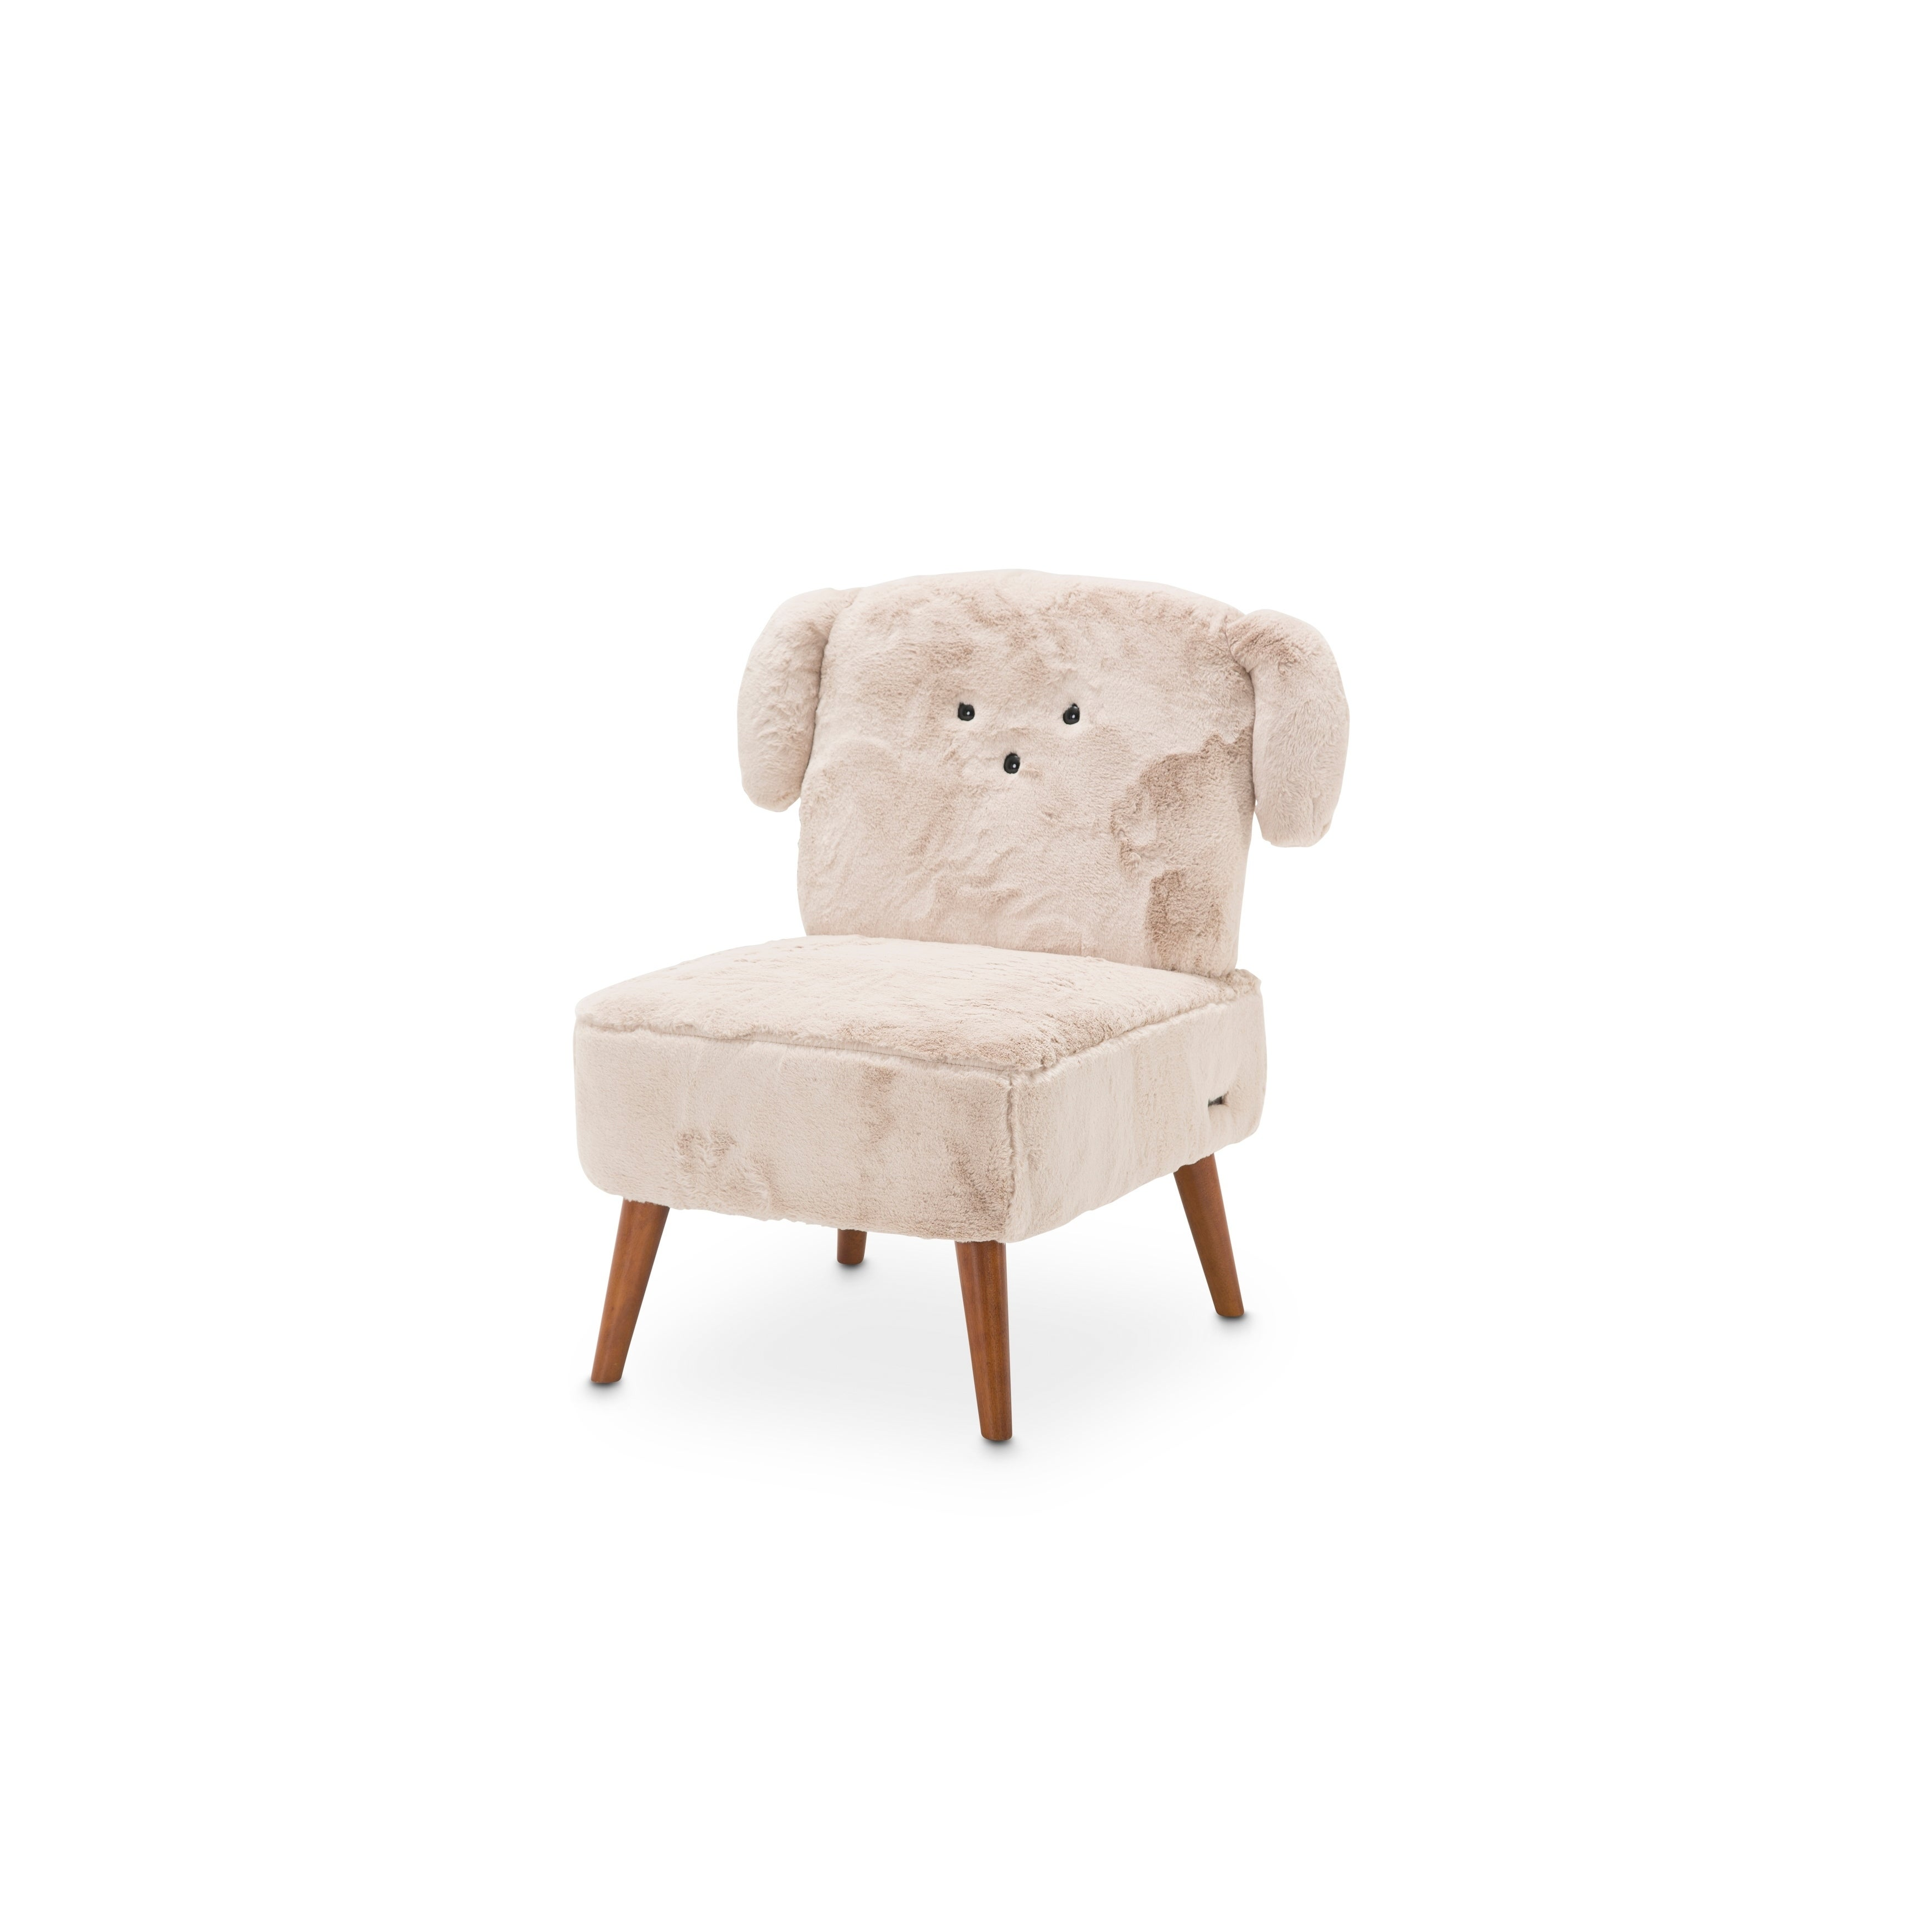 Silicon Babies Stone and Capri Puppy Armless Chair by Kathy Ireland